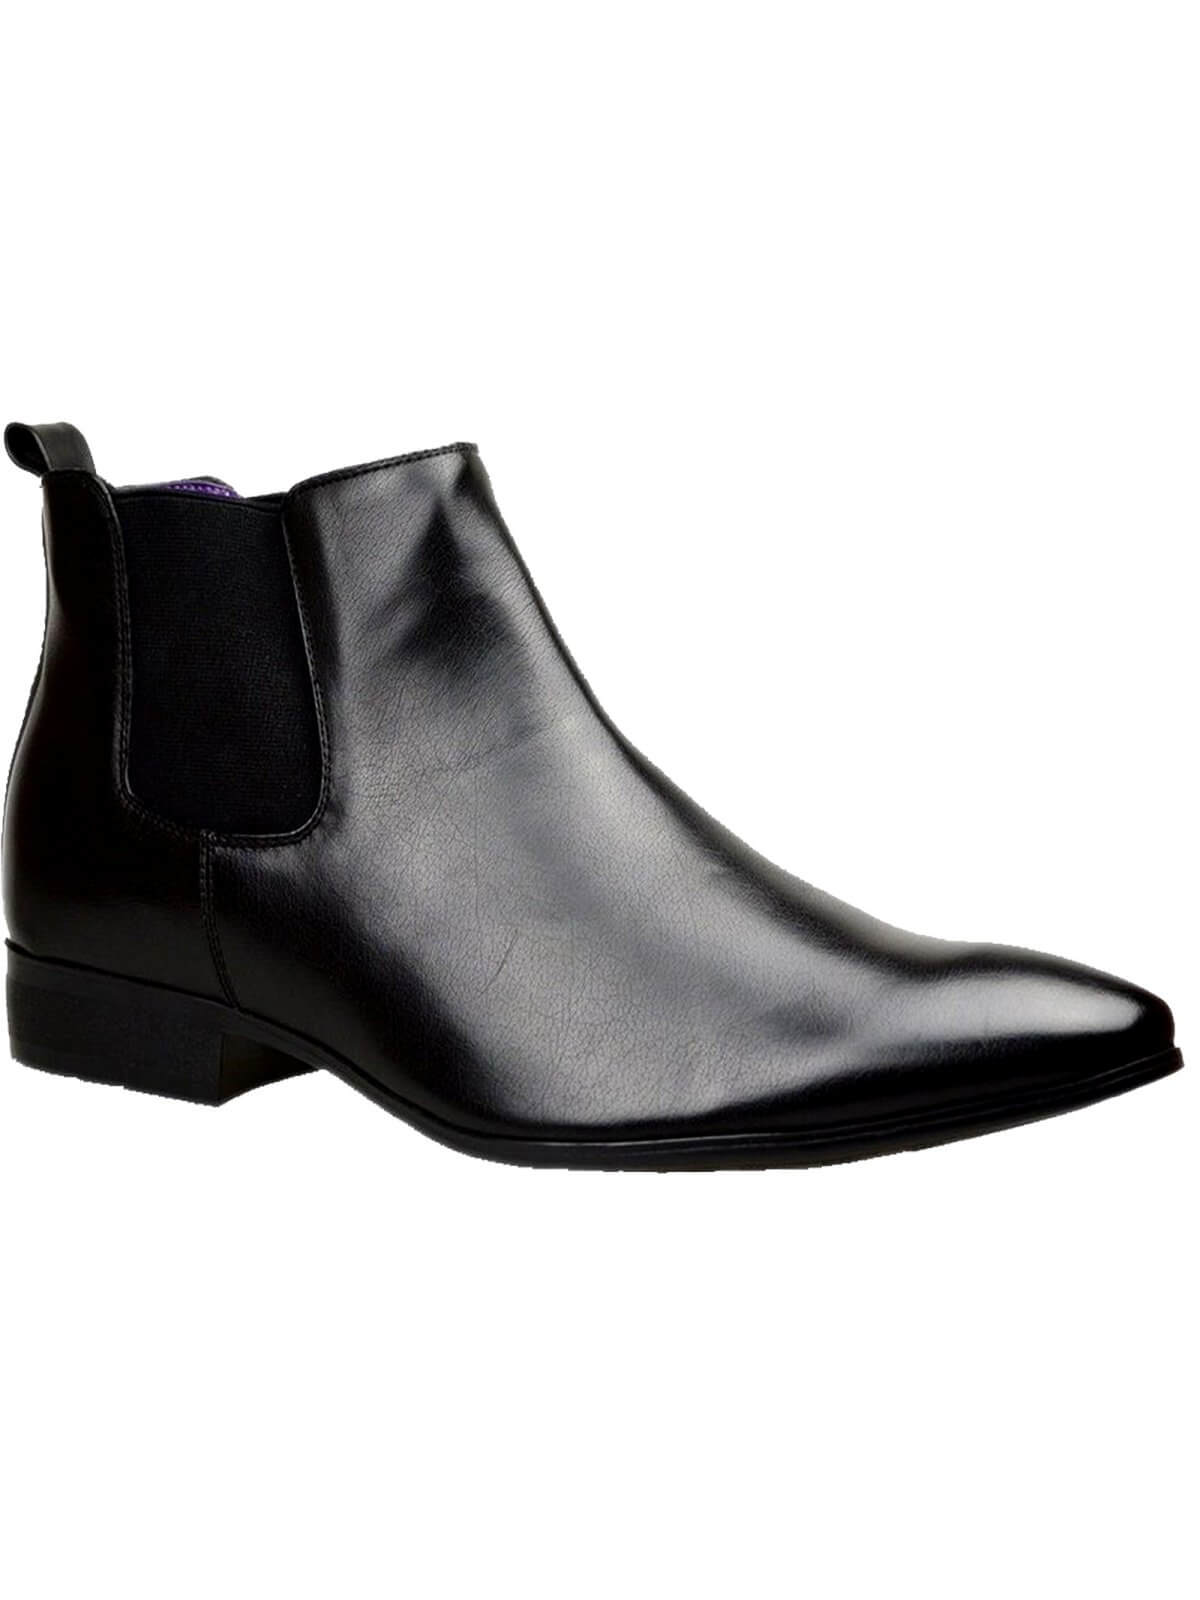 Clearance | Designer Men's Chelsea Formal Leather Boots With Elasticated Pull On